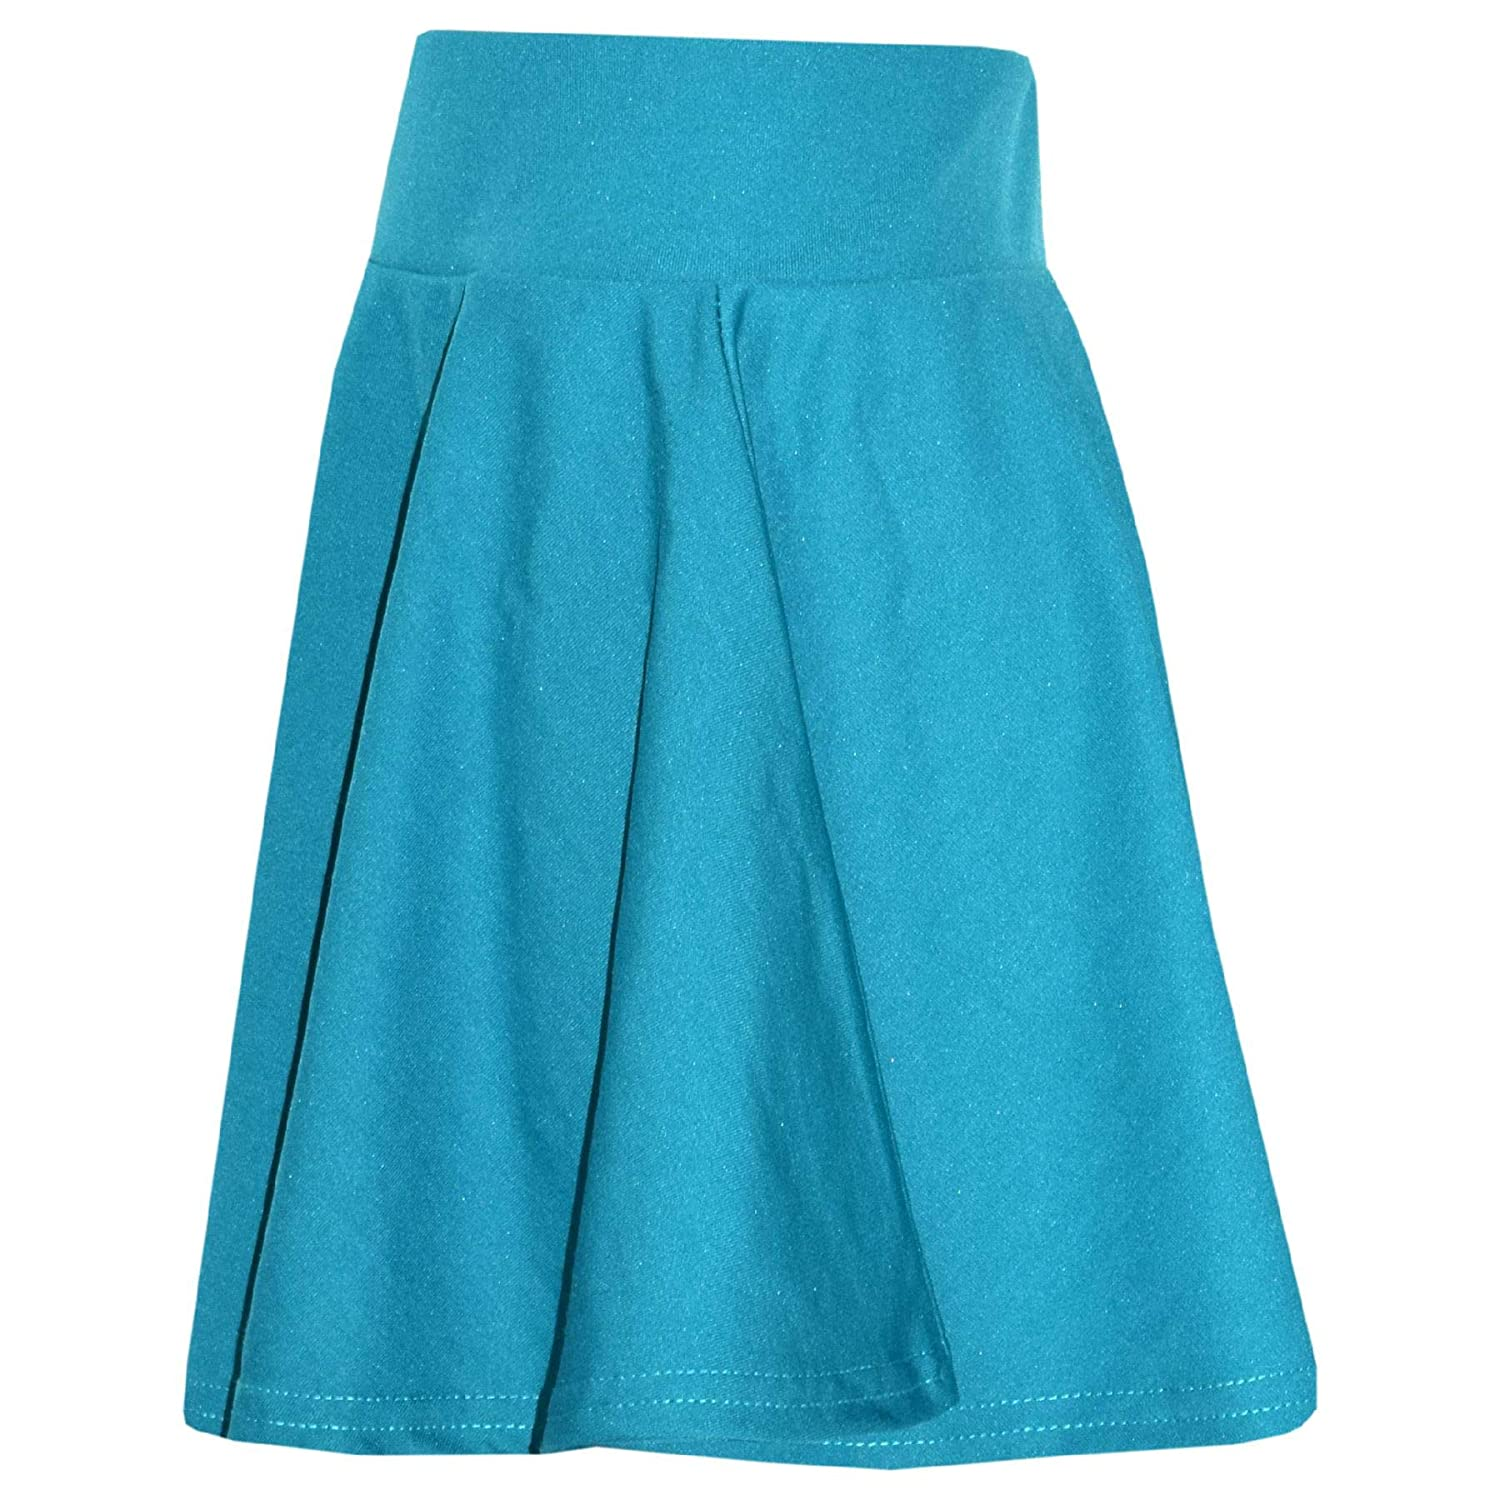 New Girls Skater Skirts School Fashion Summer Plain Skirt 5 6 7 8 9 10 11 12 13Y